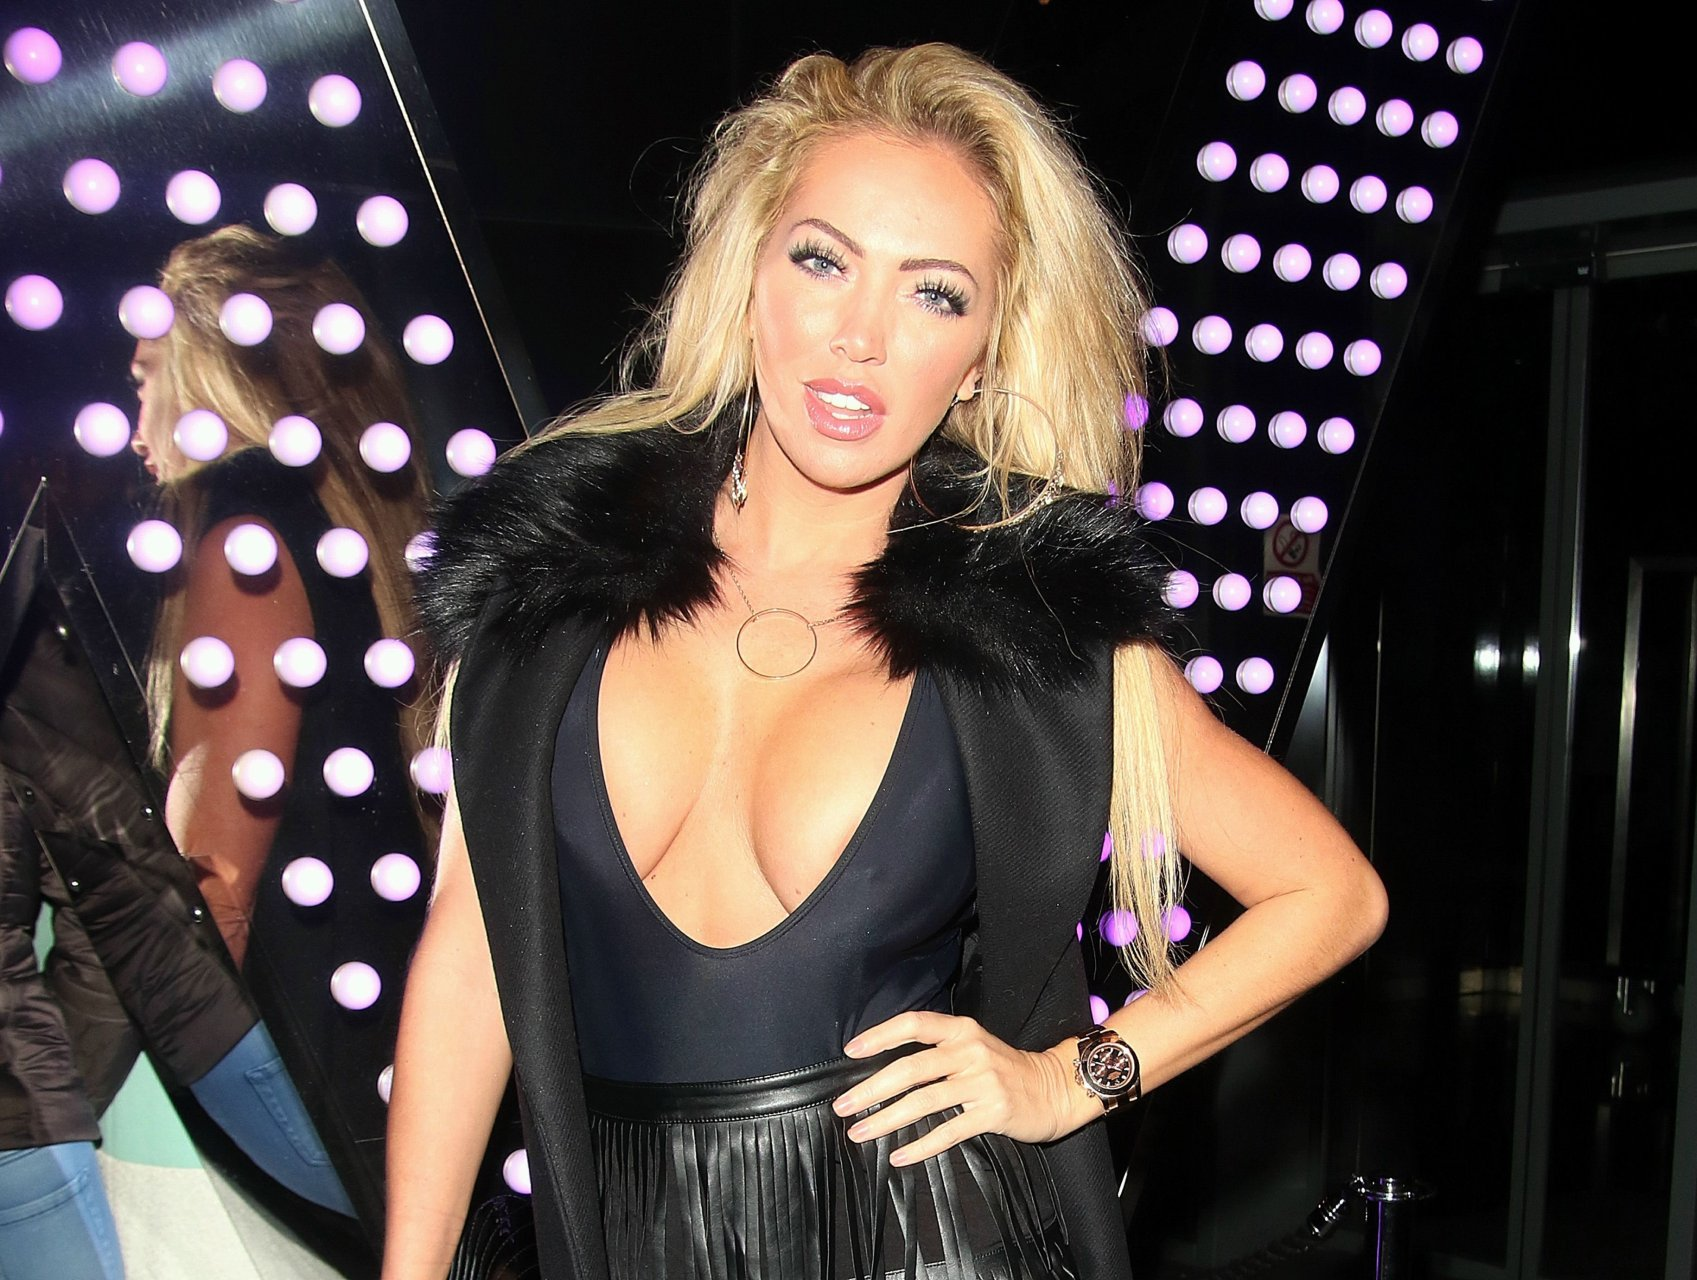 Allyson Taylor Chaturbate aisleyne horgan-wallace nude photos and videos | #thefappening